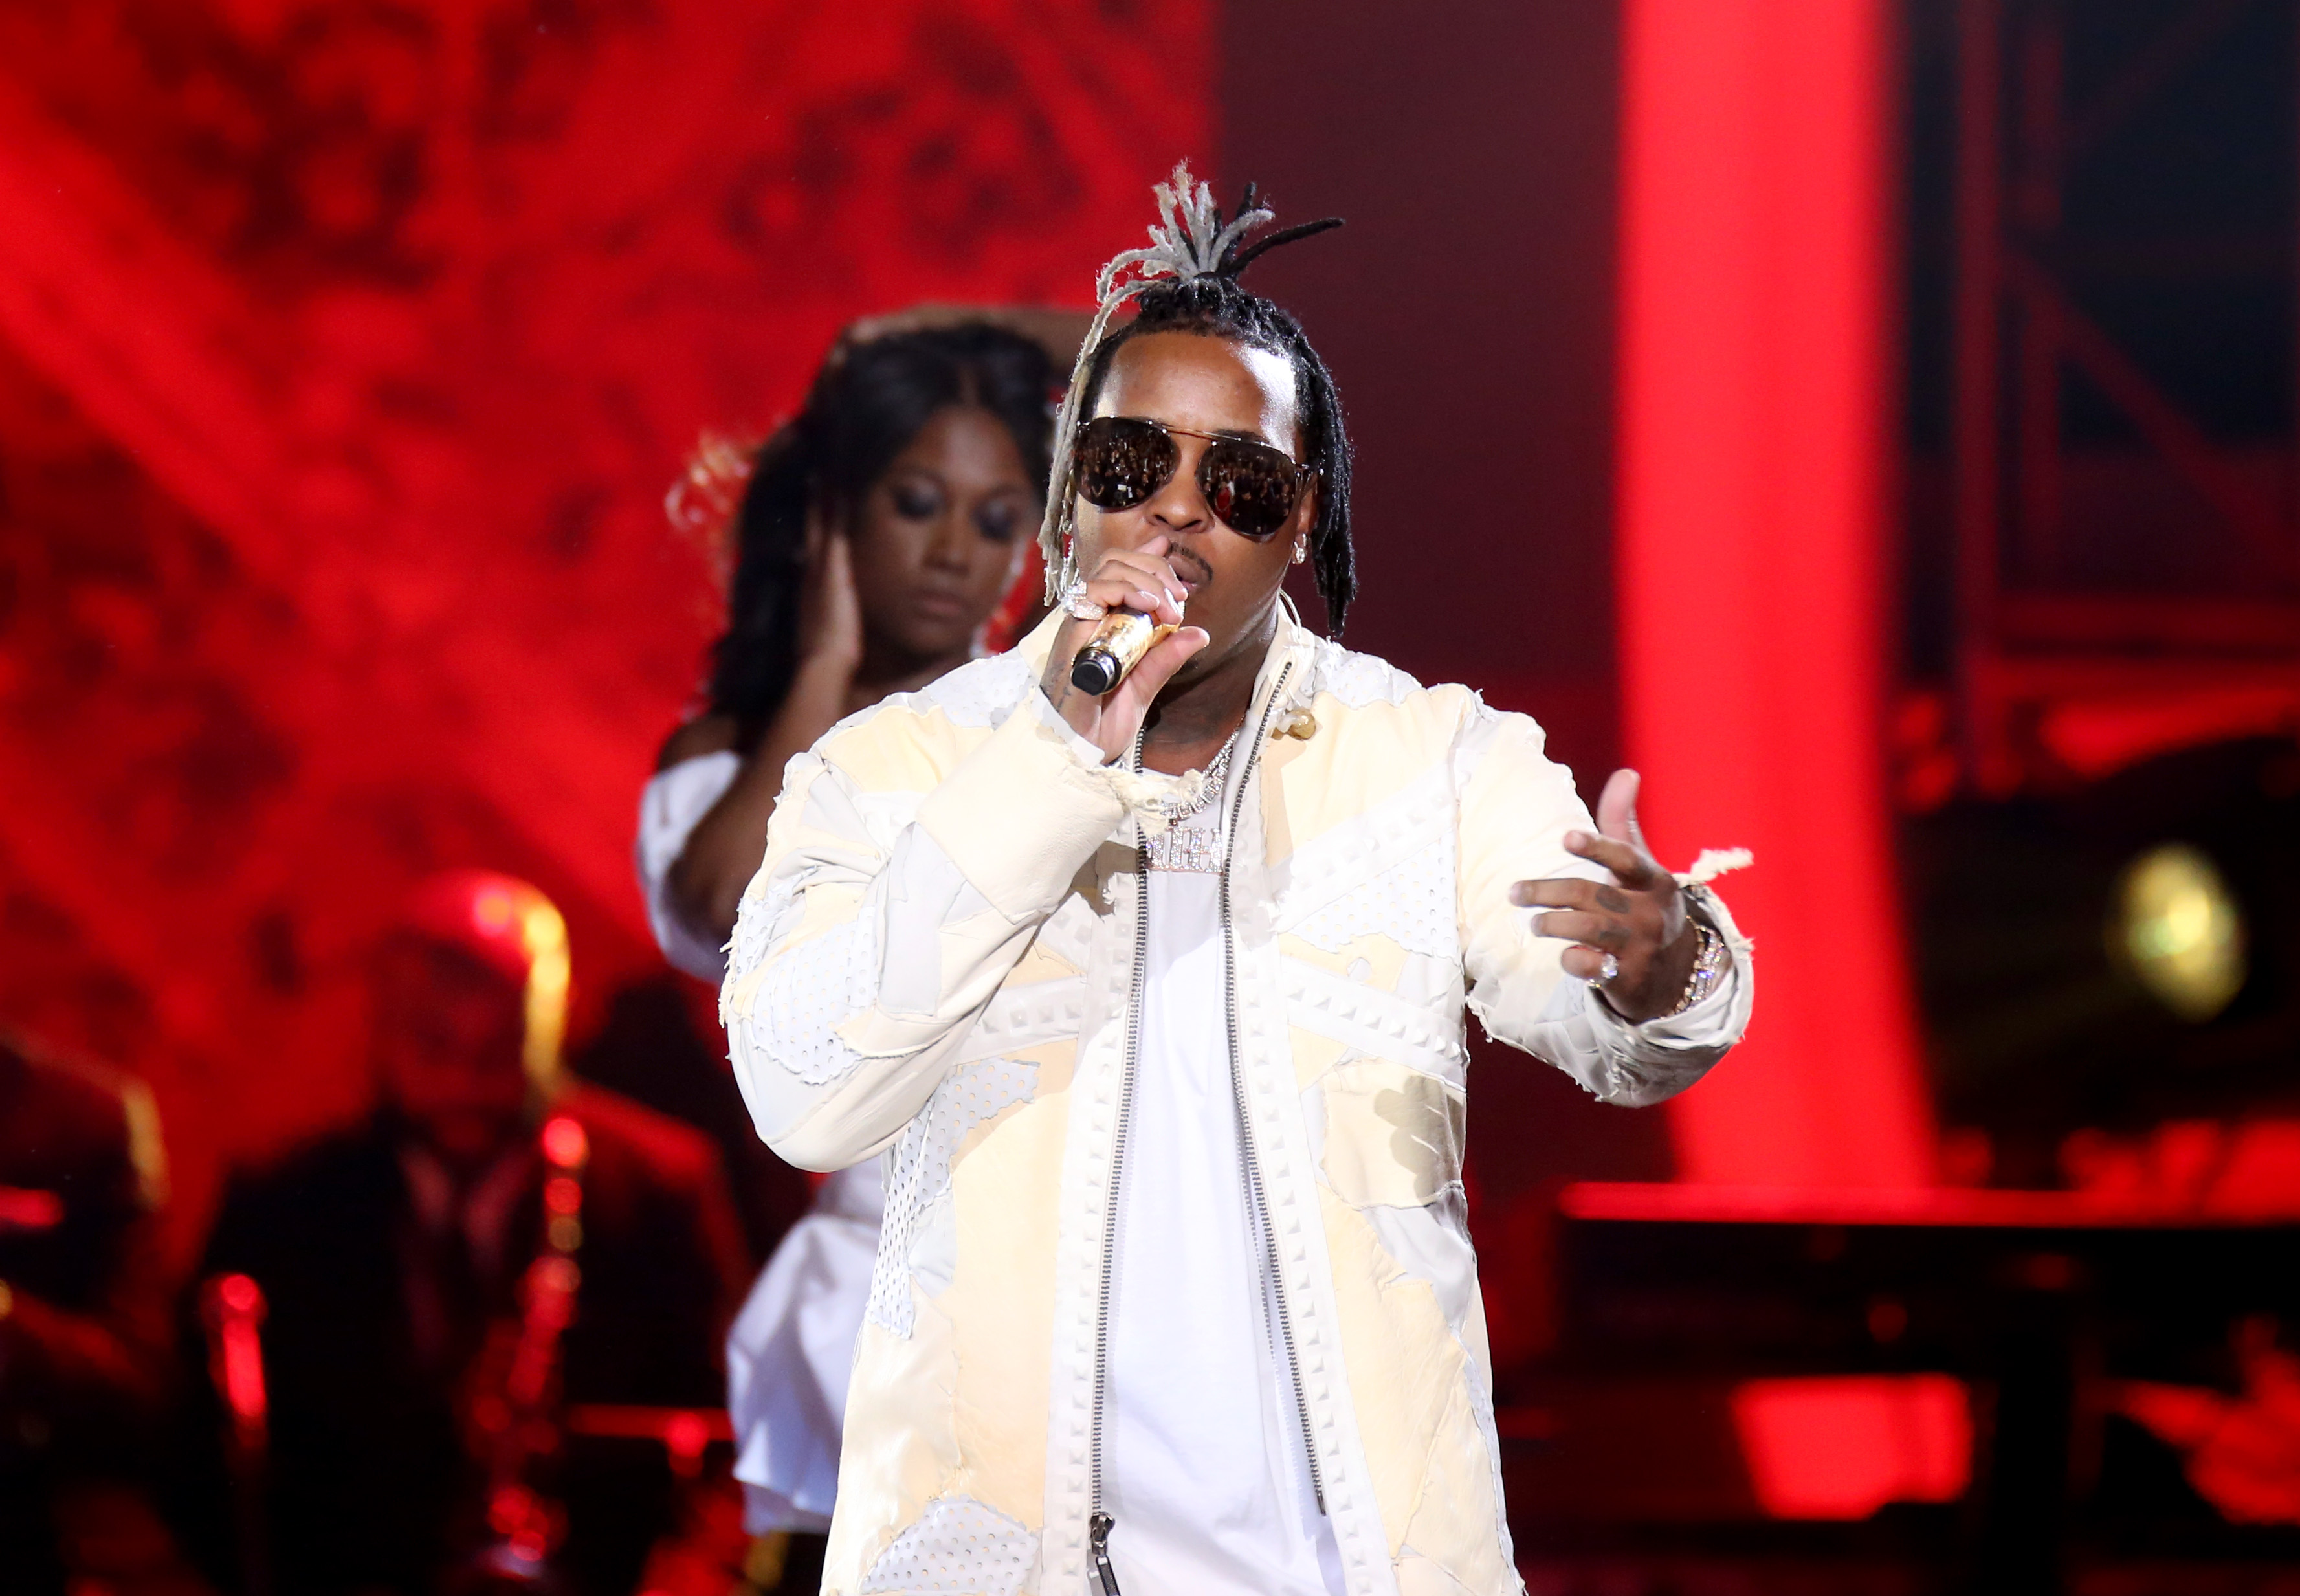 Singer Jeremih leaves hospital after battling Covid-19 and thanks health care workers for saving his life